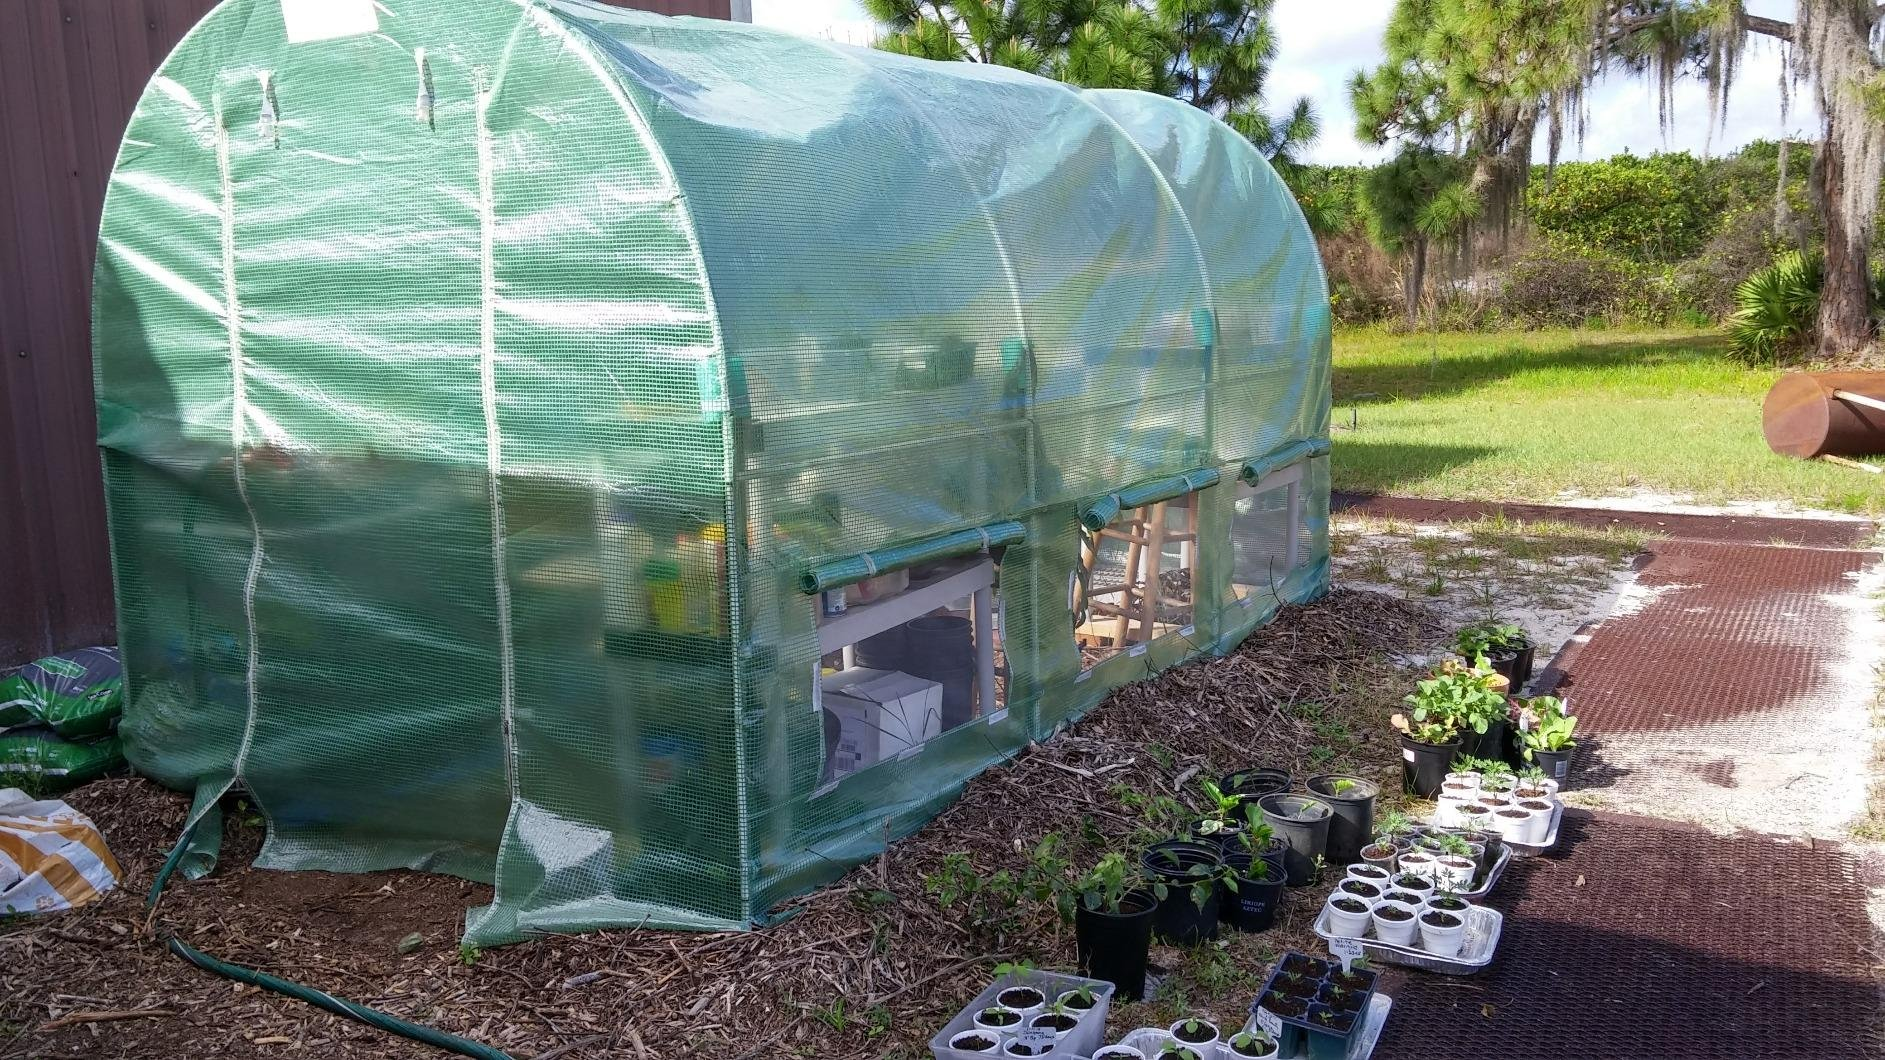 Peaktop 12'x6.5'x'6.5/15'x7'x7'/20'x10'x6' Portable Greenhouse Large Walk-in Green Garden Hot House (Arch Roof, 12'x6.5'x6.5)